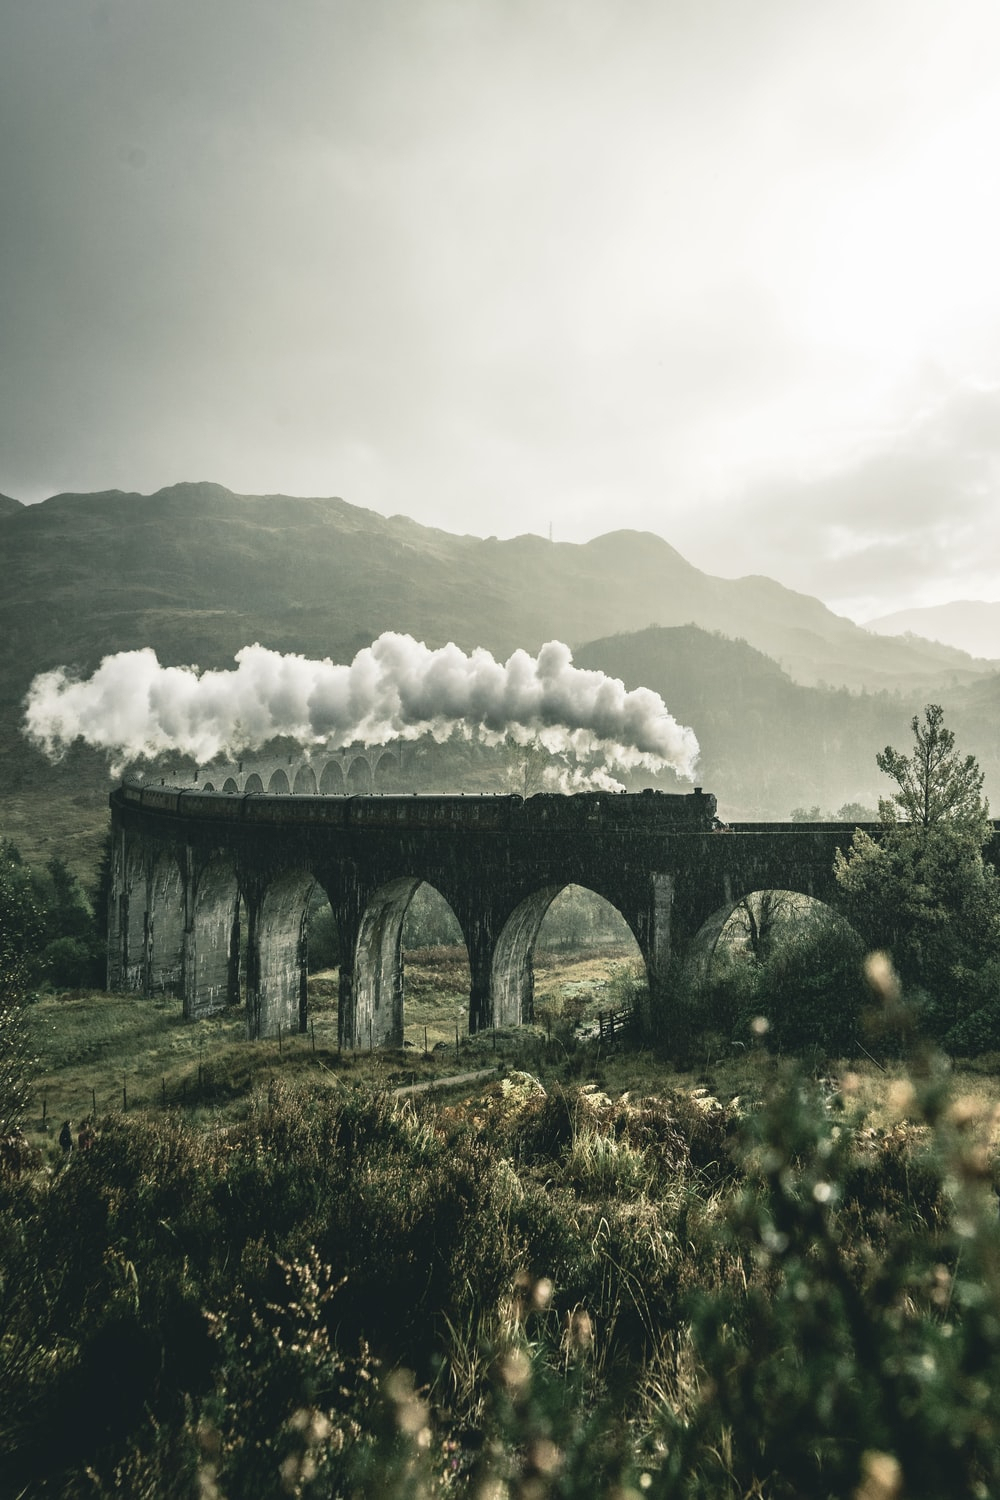 black train on railway bridge under heavy clouds